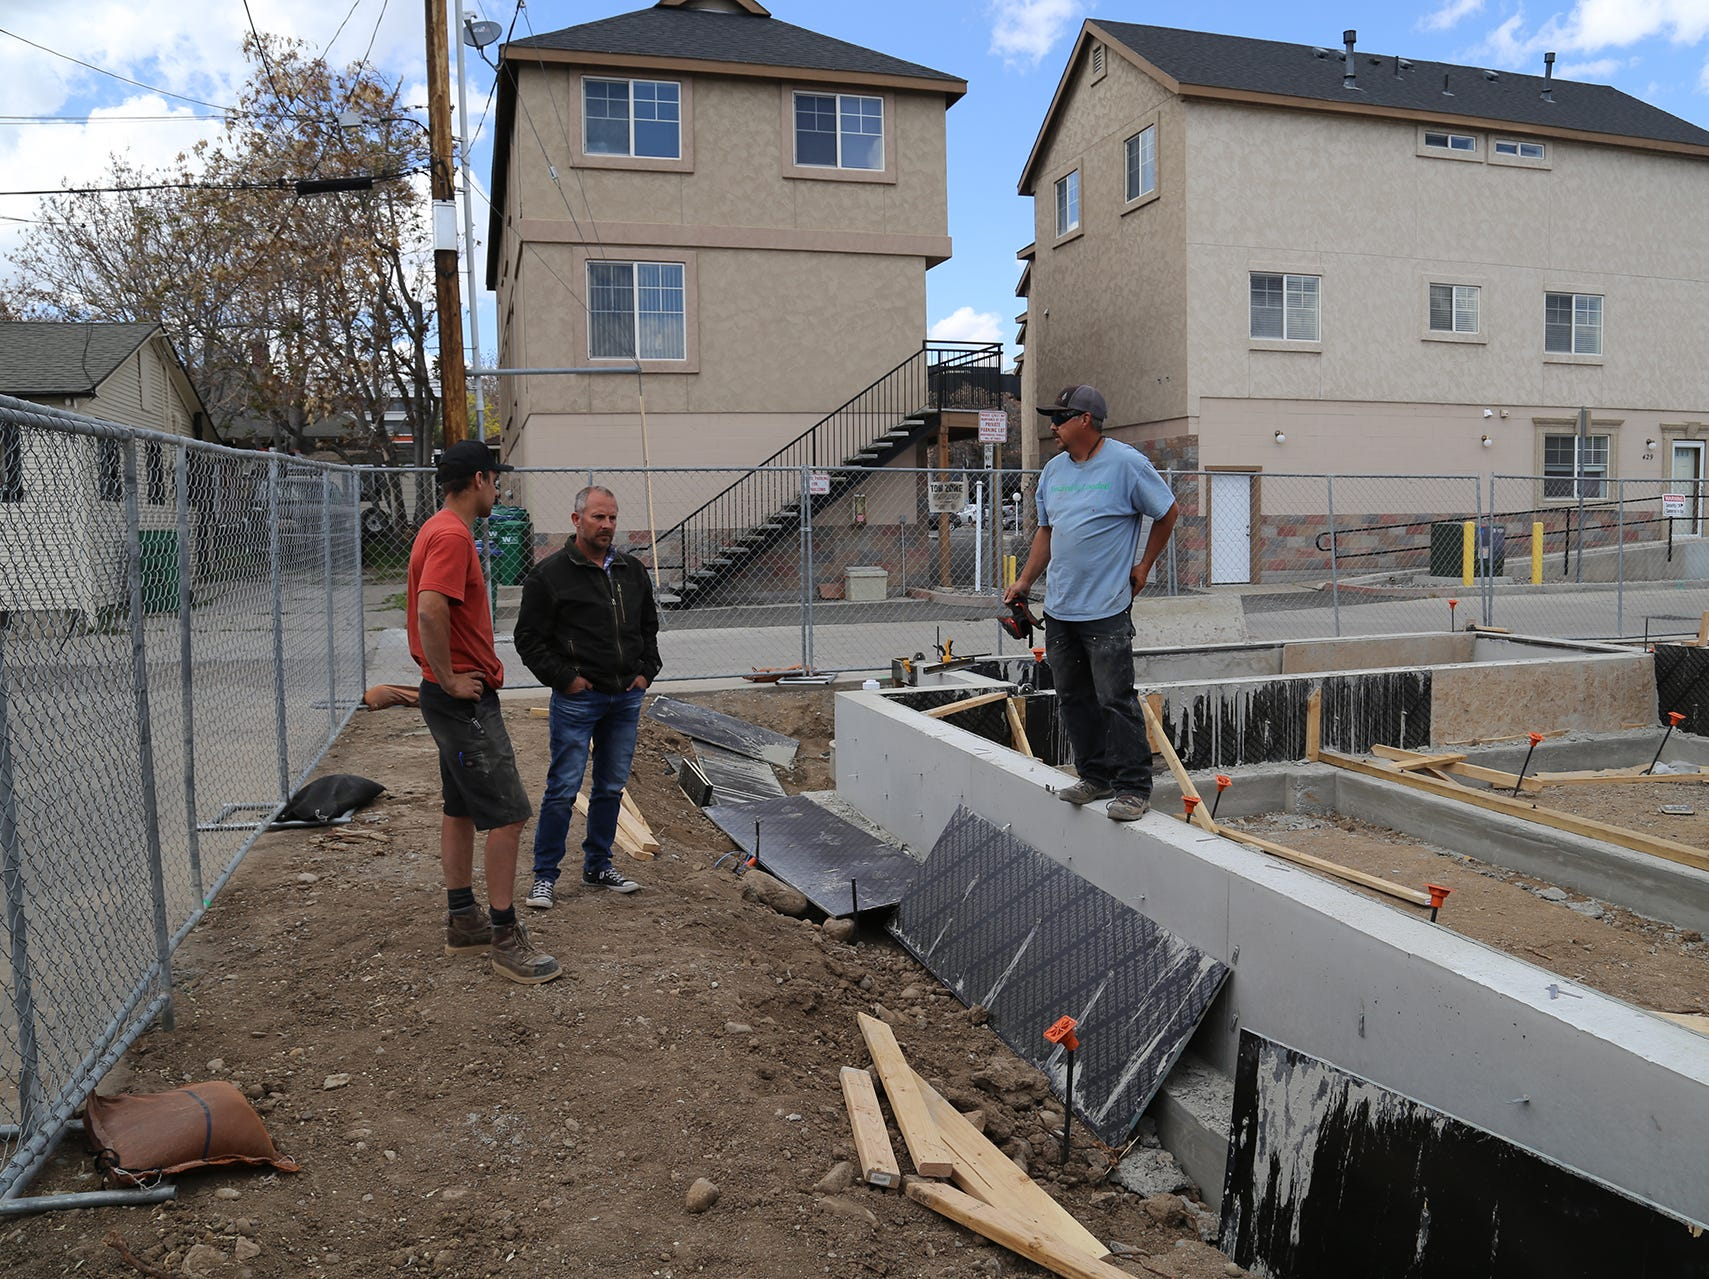 Bryan Raydon of Marmot Properties surveys the foundation of a new shipping container apartment project at Midtown Reno on Holcomb Avenue and Moran Street on April 29, 2019.